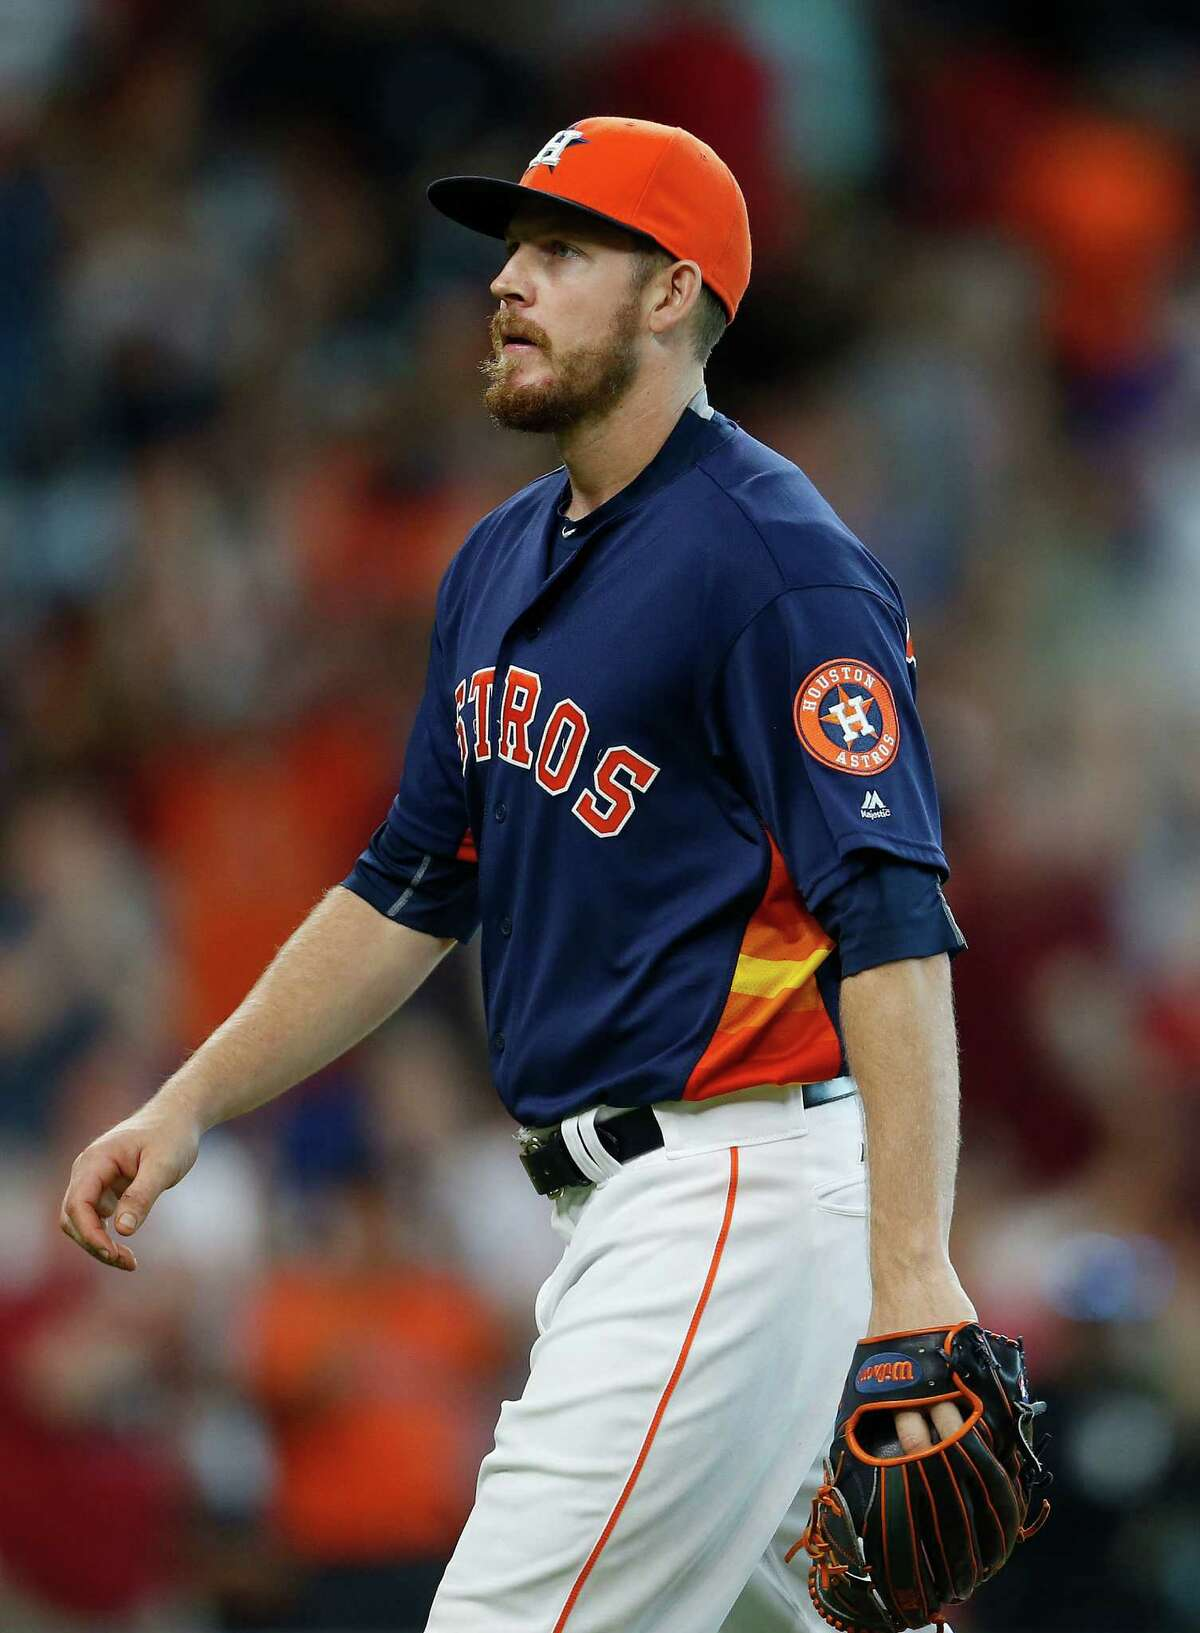 Houston Astros relief pitcher Chris Devenski (47) walks back to the dugout after the tenth inning of an MLB game at Minute Maid Park, Sunday, Aug. 7, 2016, in Houston.